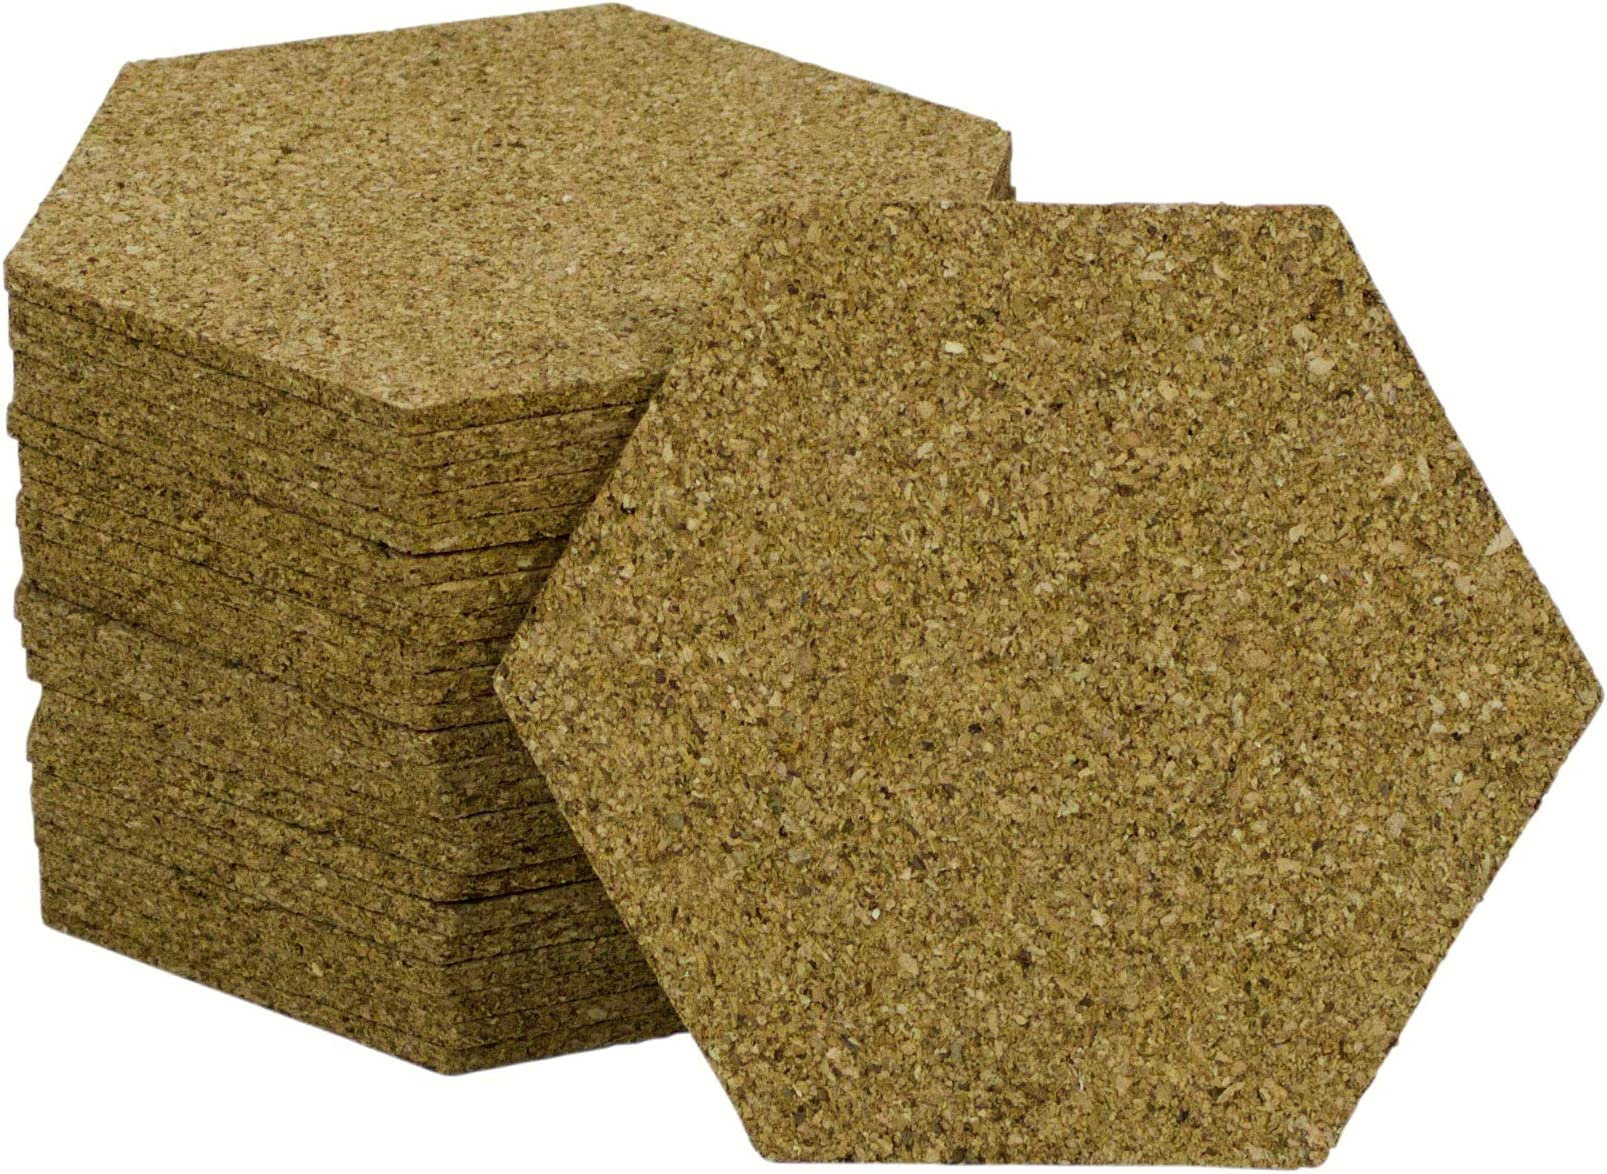 by Iconikal 24 Hexagon Cork Coasters 1//8-inch Thick Cork